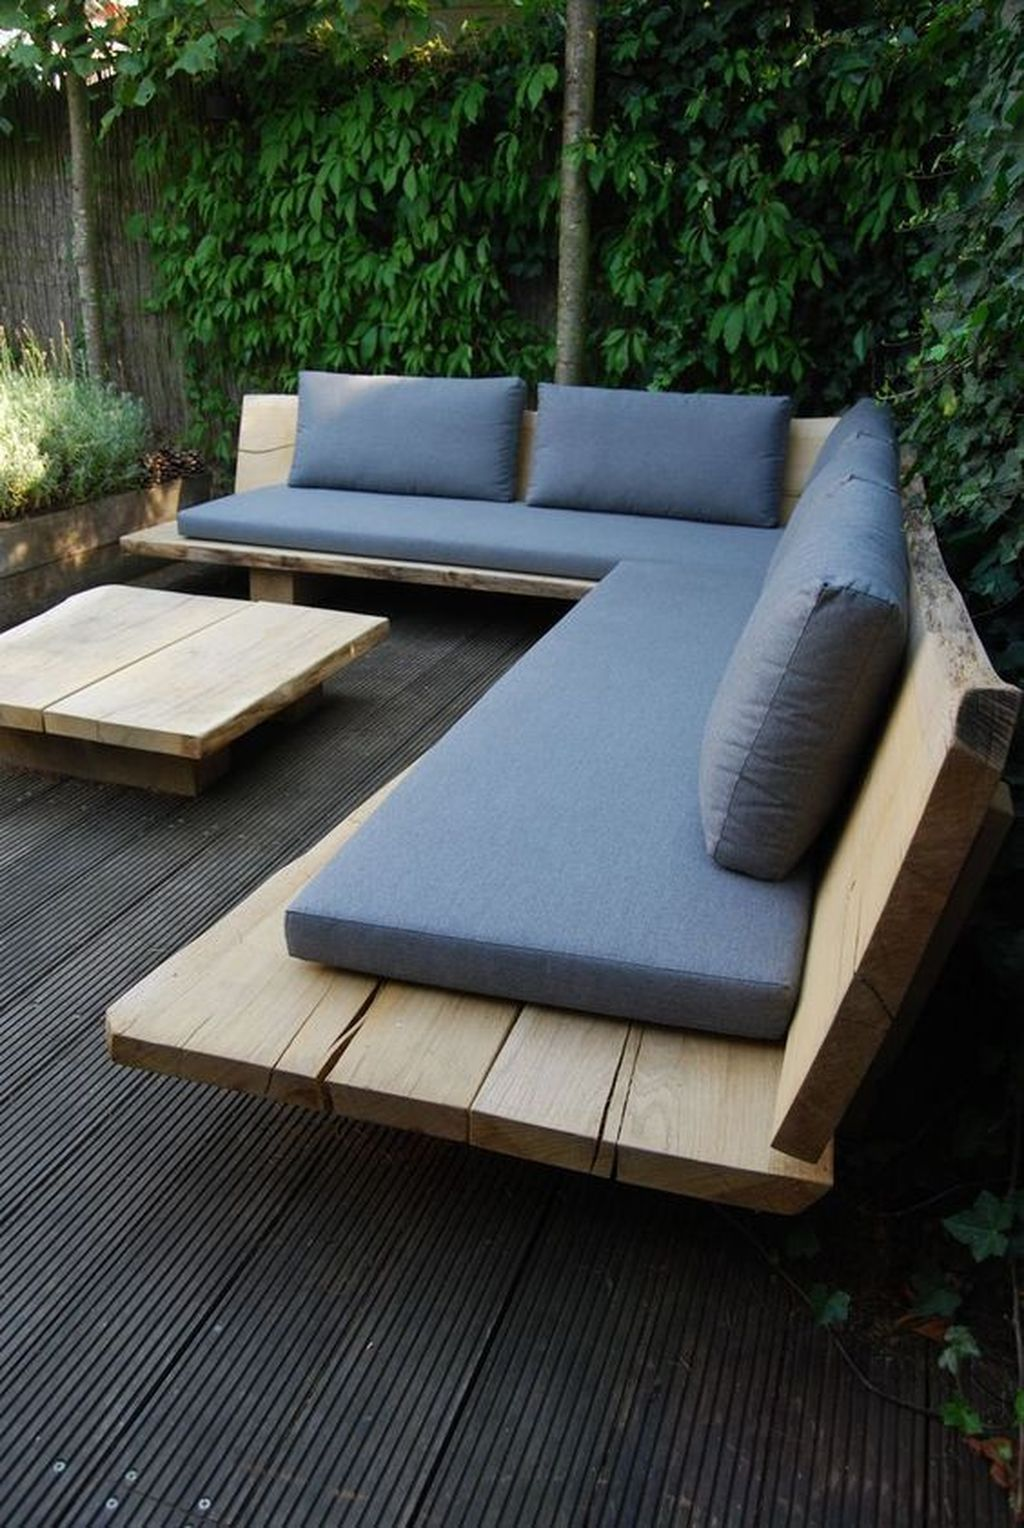 Cool 27 The Best Outdoor Patio Furniture Ideas Diy Bench Outdoor Outdoor Furniture Decor Modern Outdoor Furniture